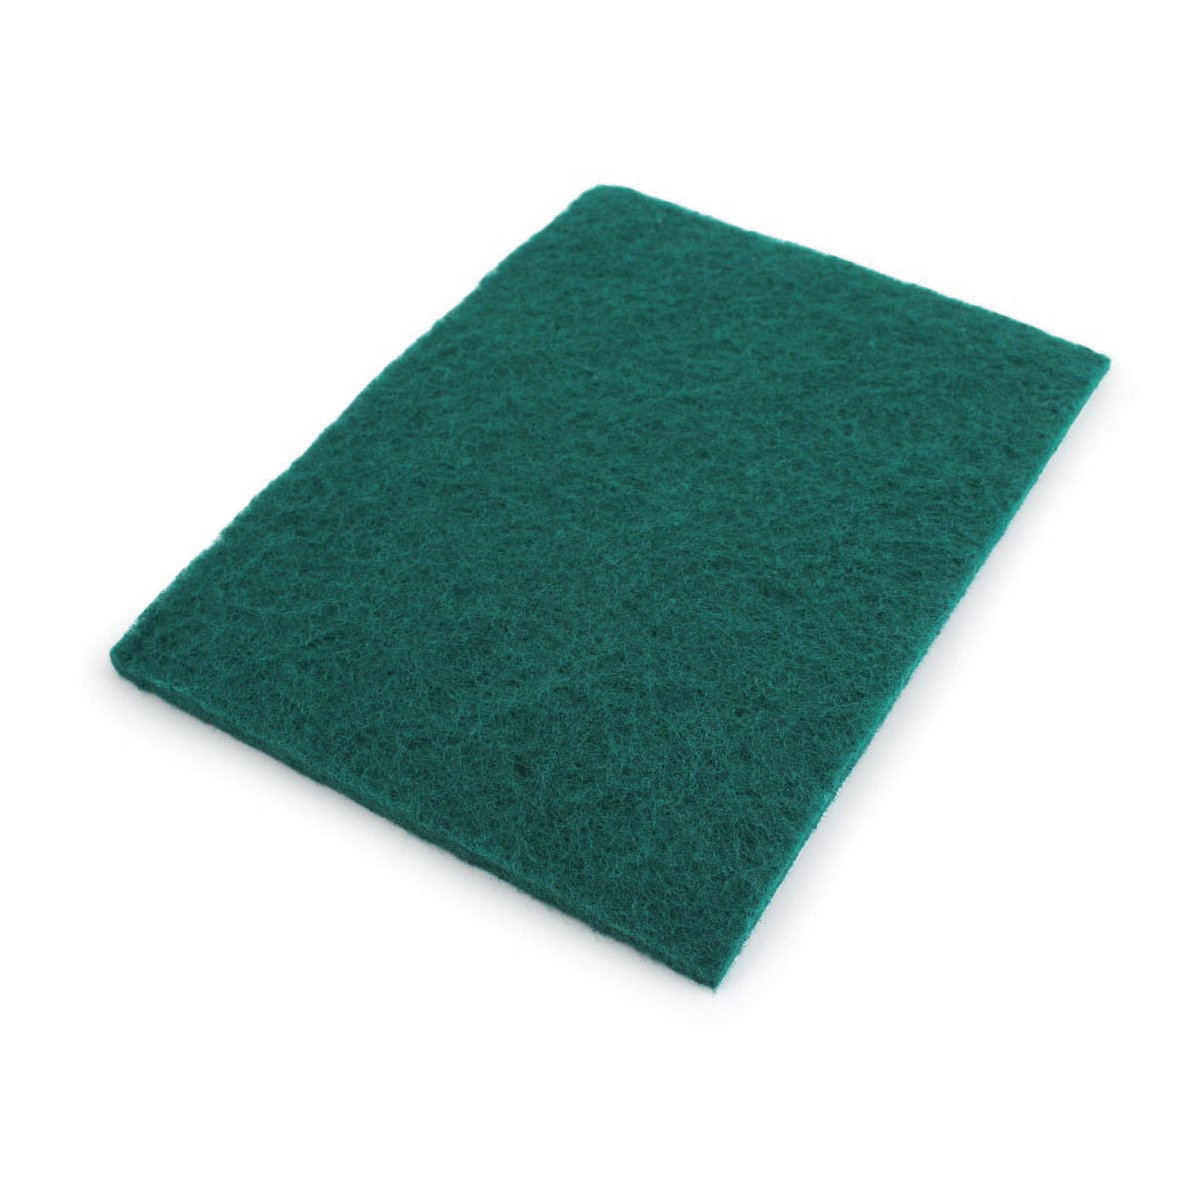 Cloths / Dusters / Scourers / Sponges Bentley Abrasive Scourer W150xD225xH5mm Ref SCO01/10 Pack 10